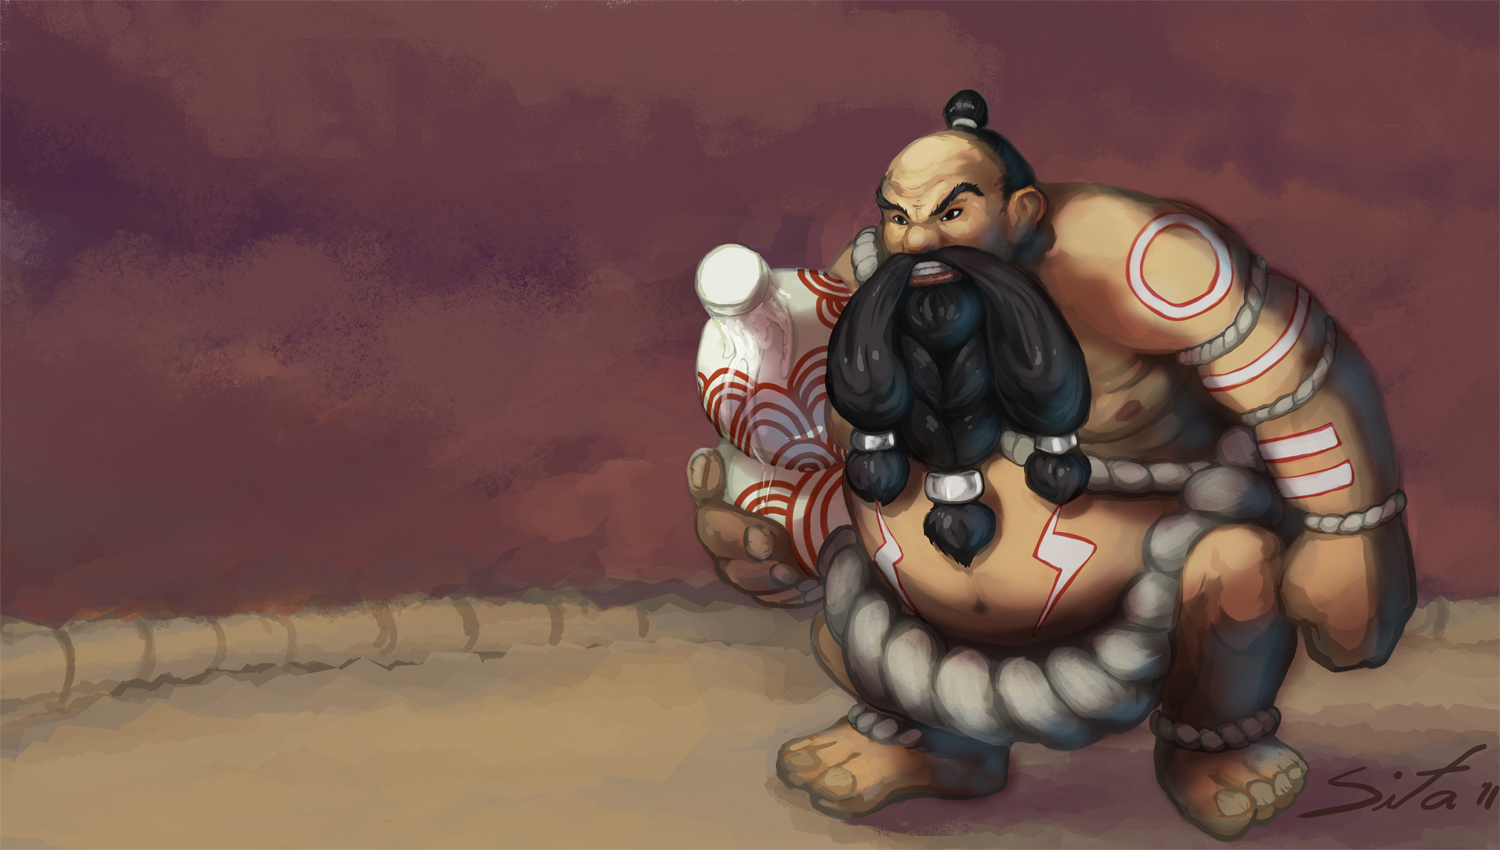 Sumo Gragas  League of Legends by Sitaart